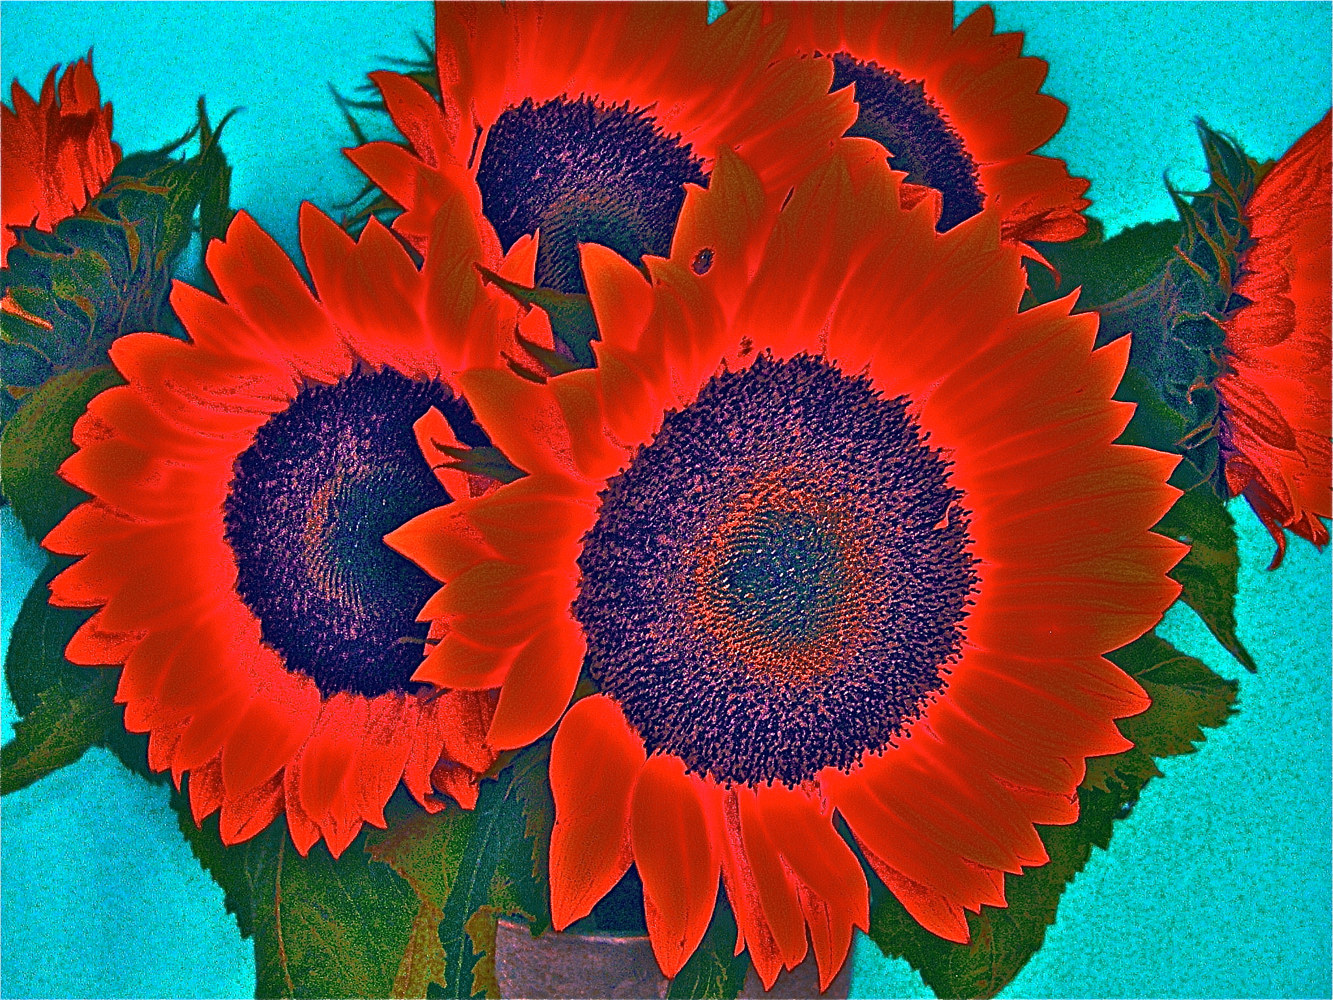 RED HOT SUNFLOWERS by Joeann Edmonds-Matthew